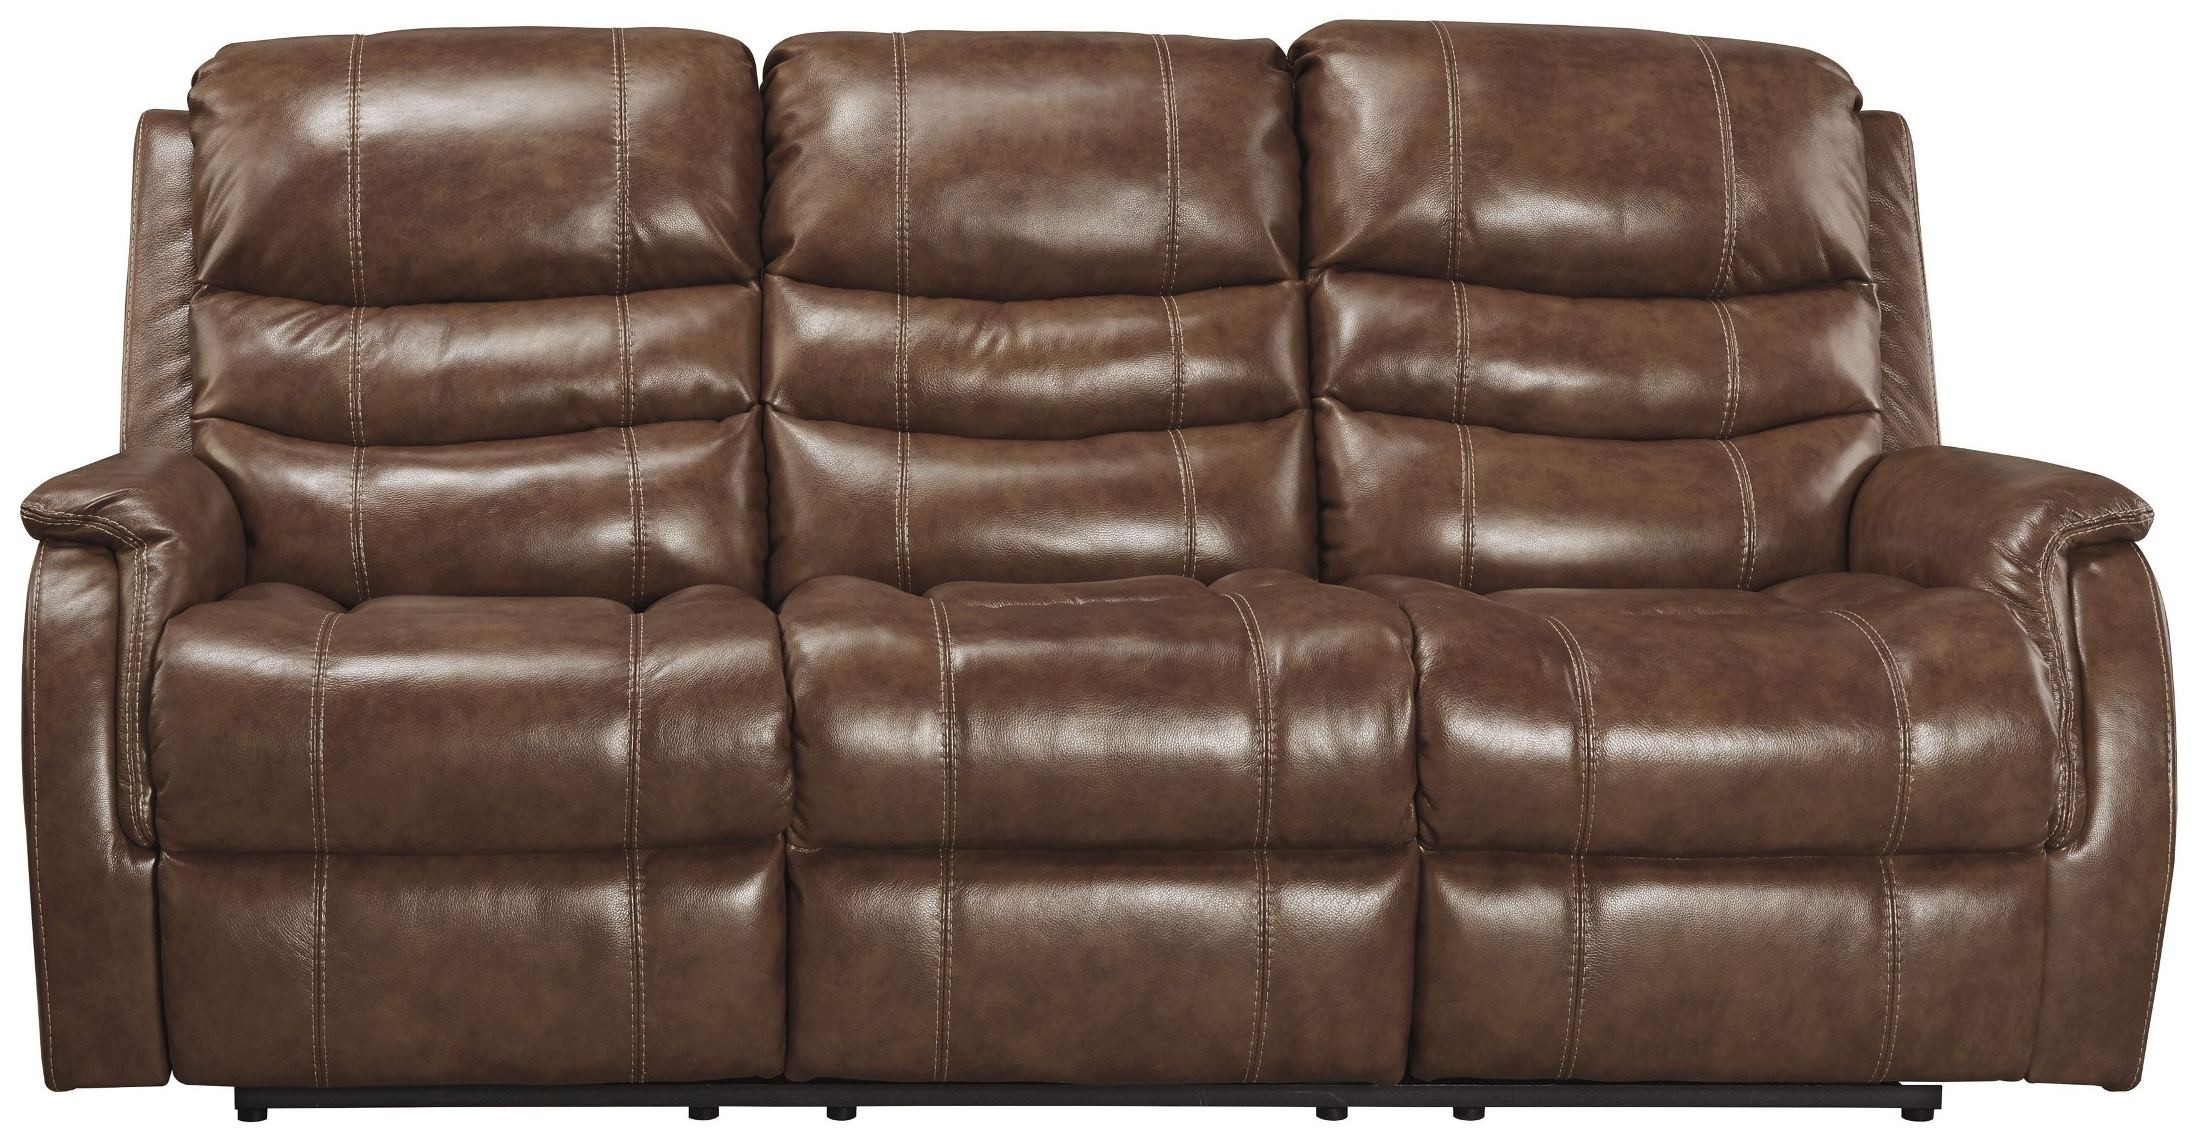 Power Headrest Recliner From Signature Design By Ashley · 1655779 · 1655778